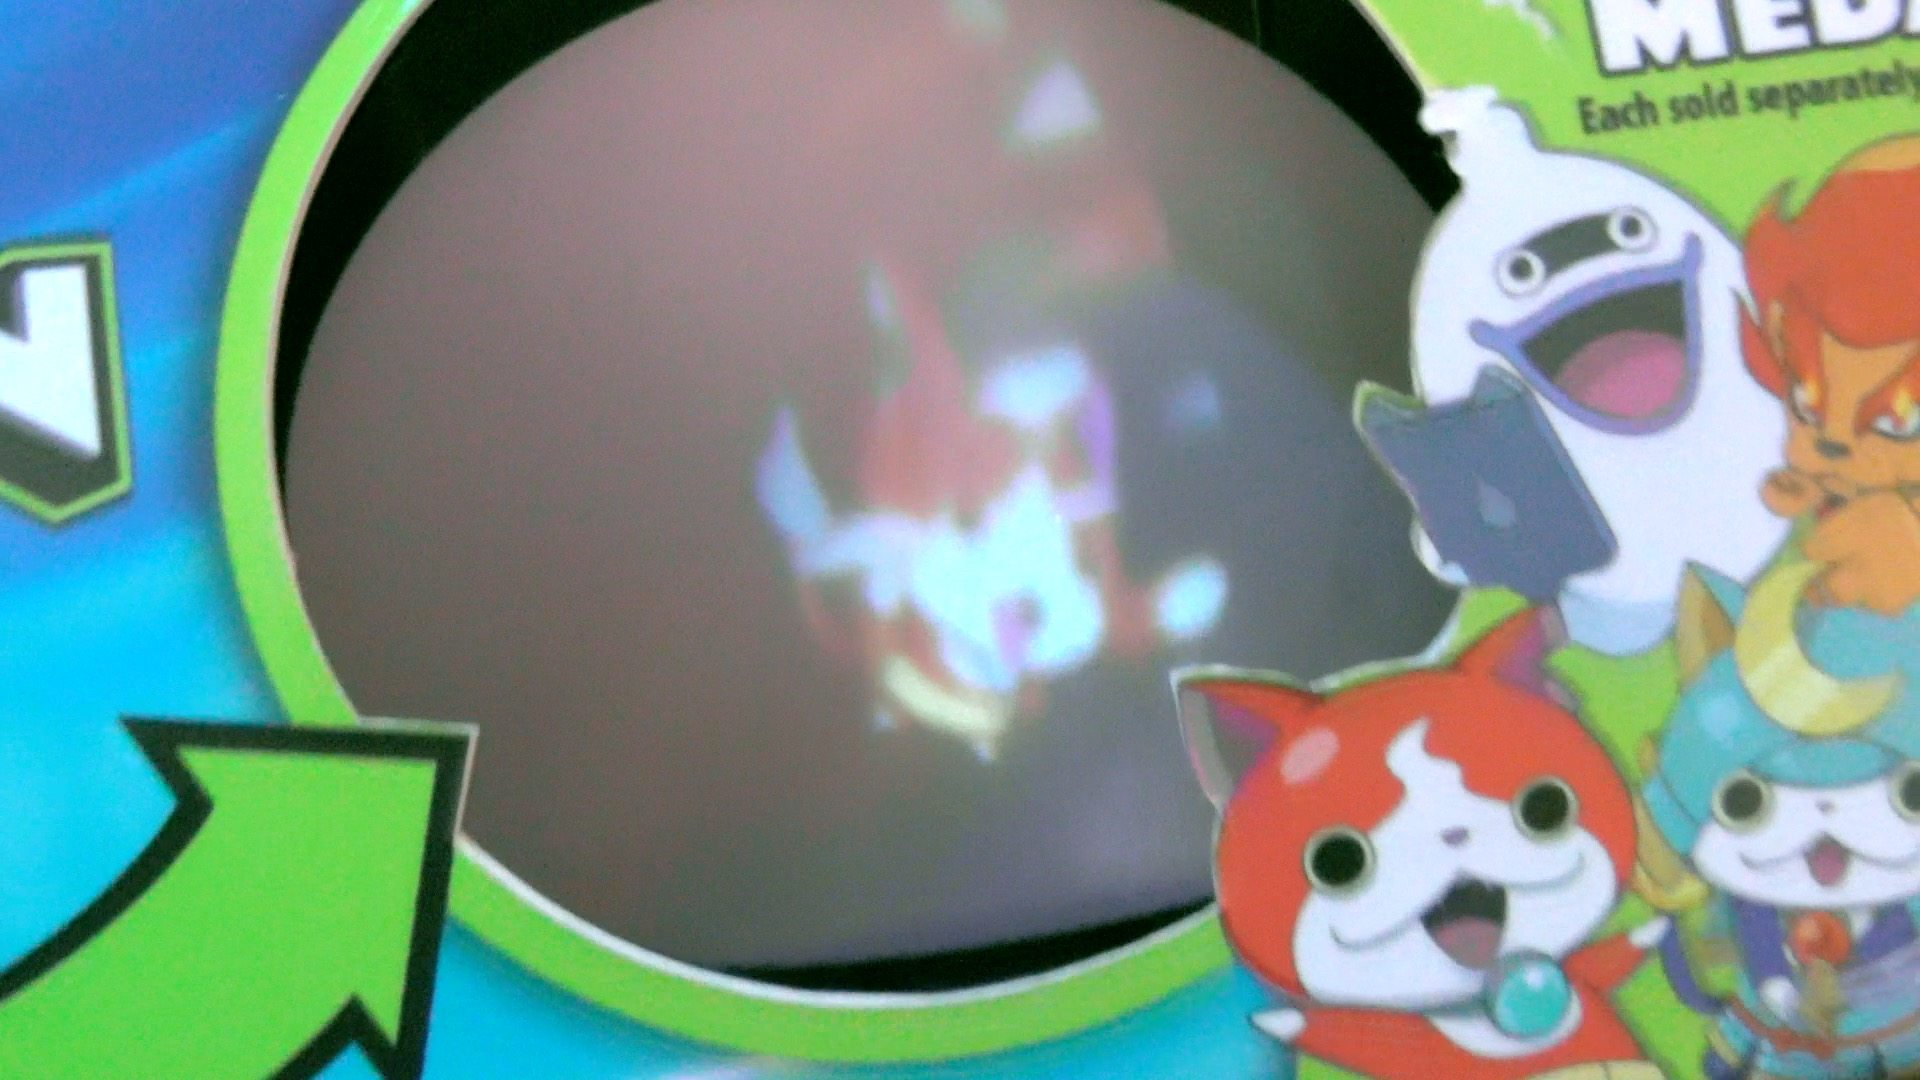 'Yo-Kai Watch' Season 2 Adds Projected Images, Card Game, and Giant Plush